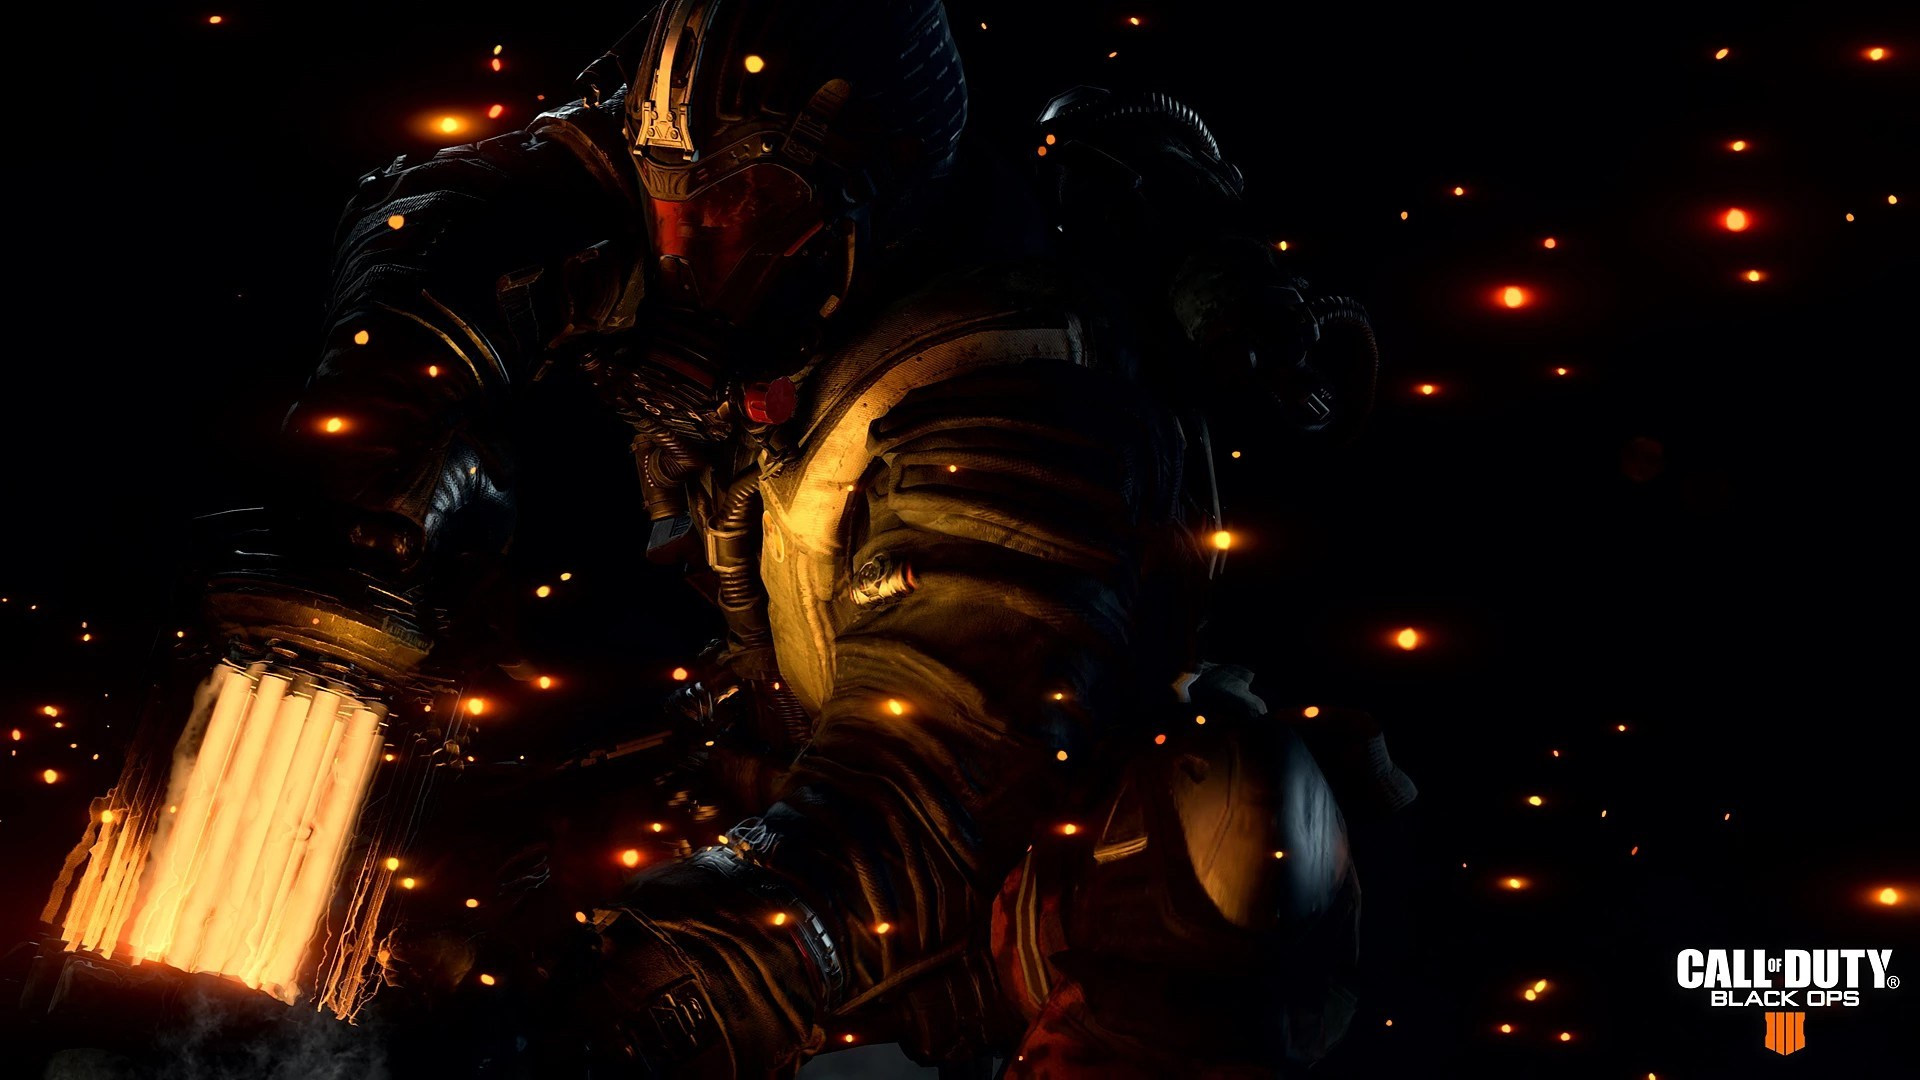 Call of Duty Black Ops 4 screenshot wallpaper 1920x1080